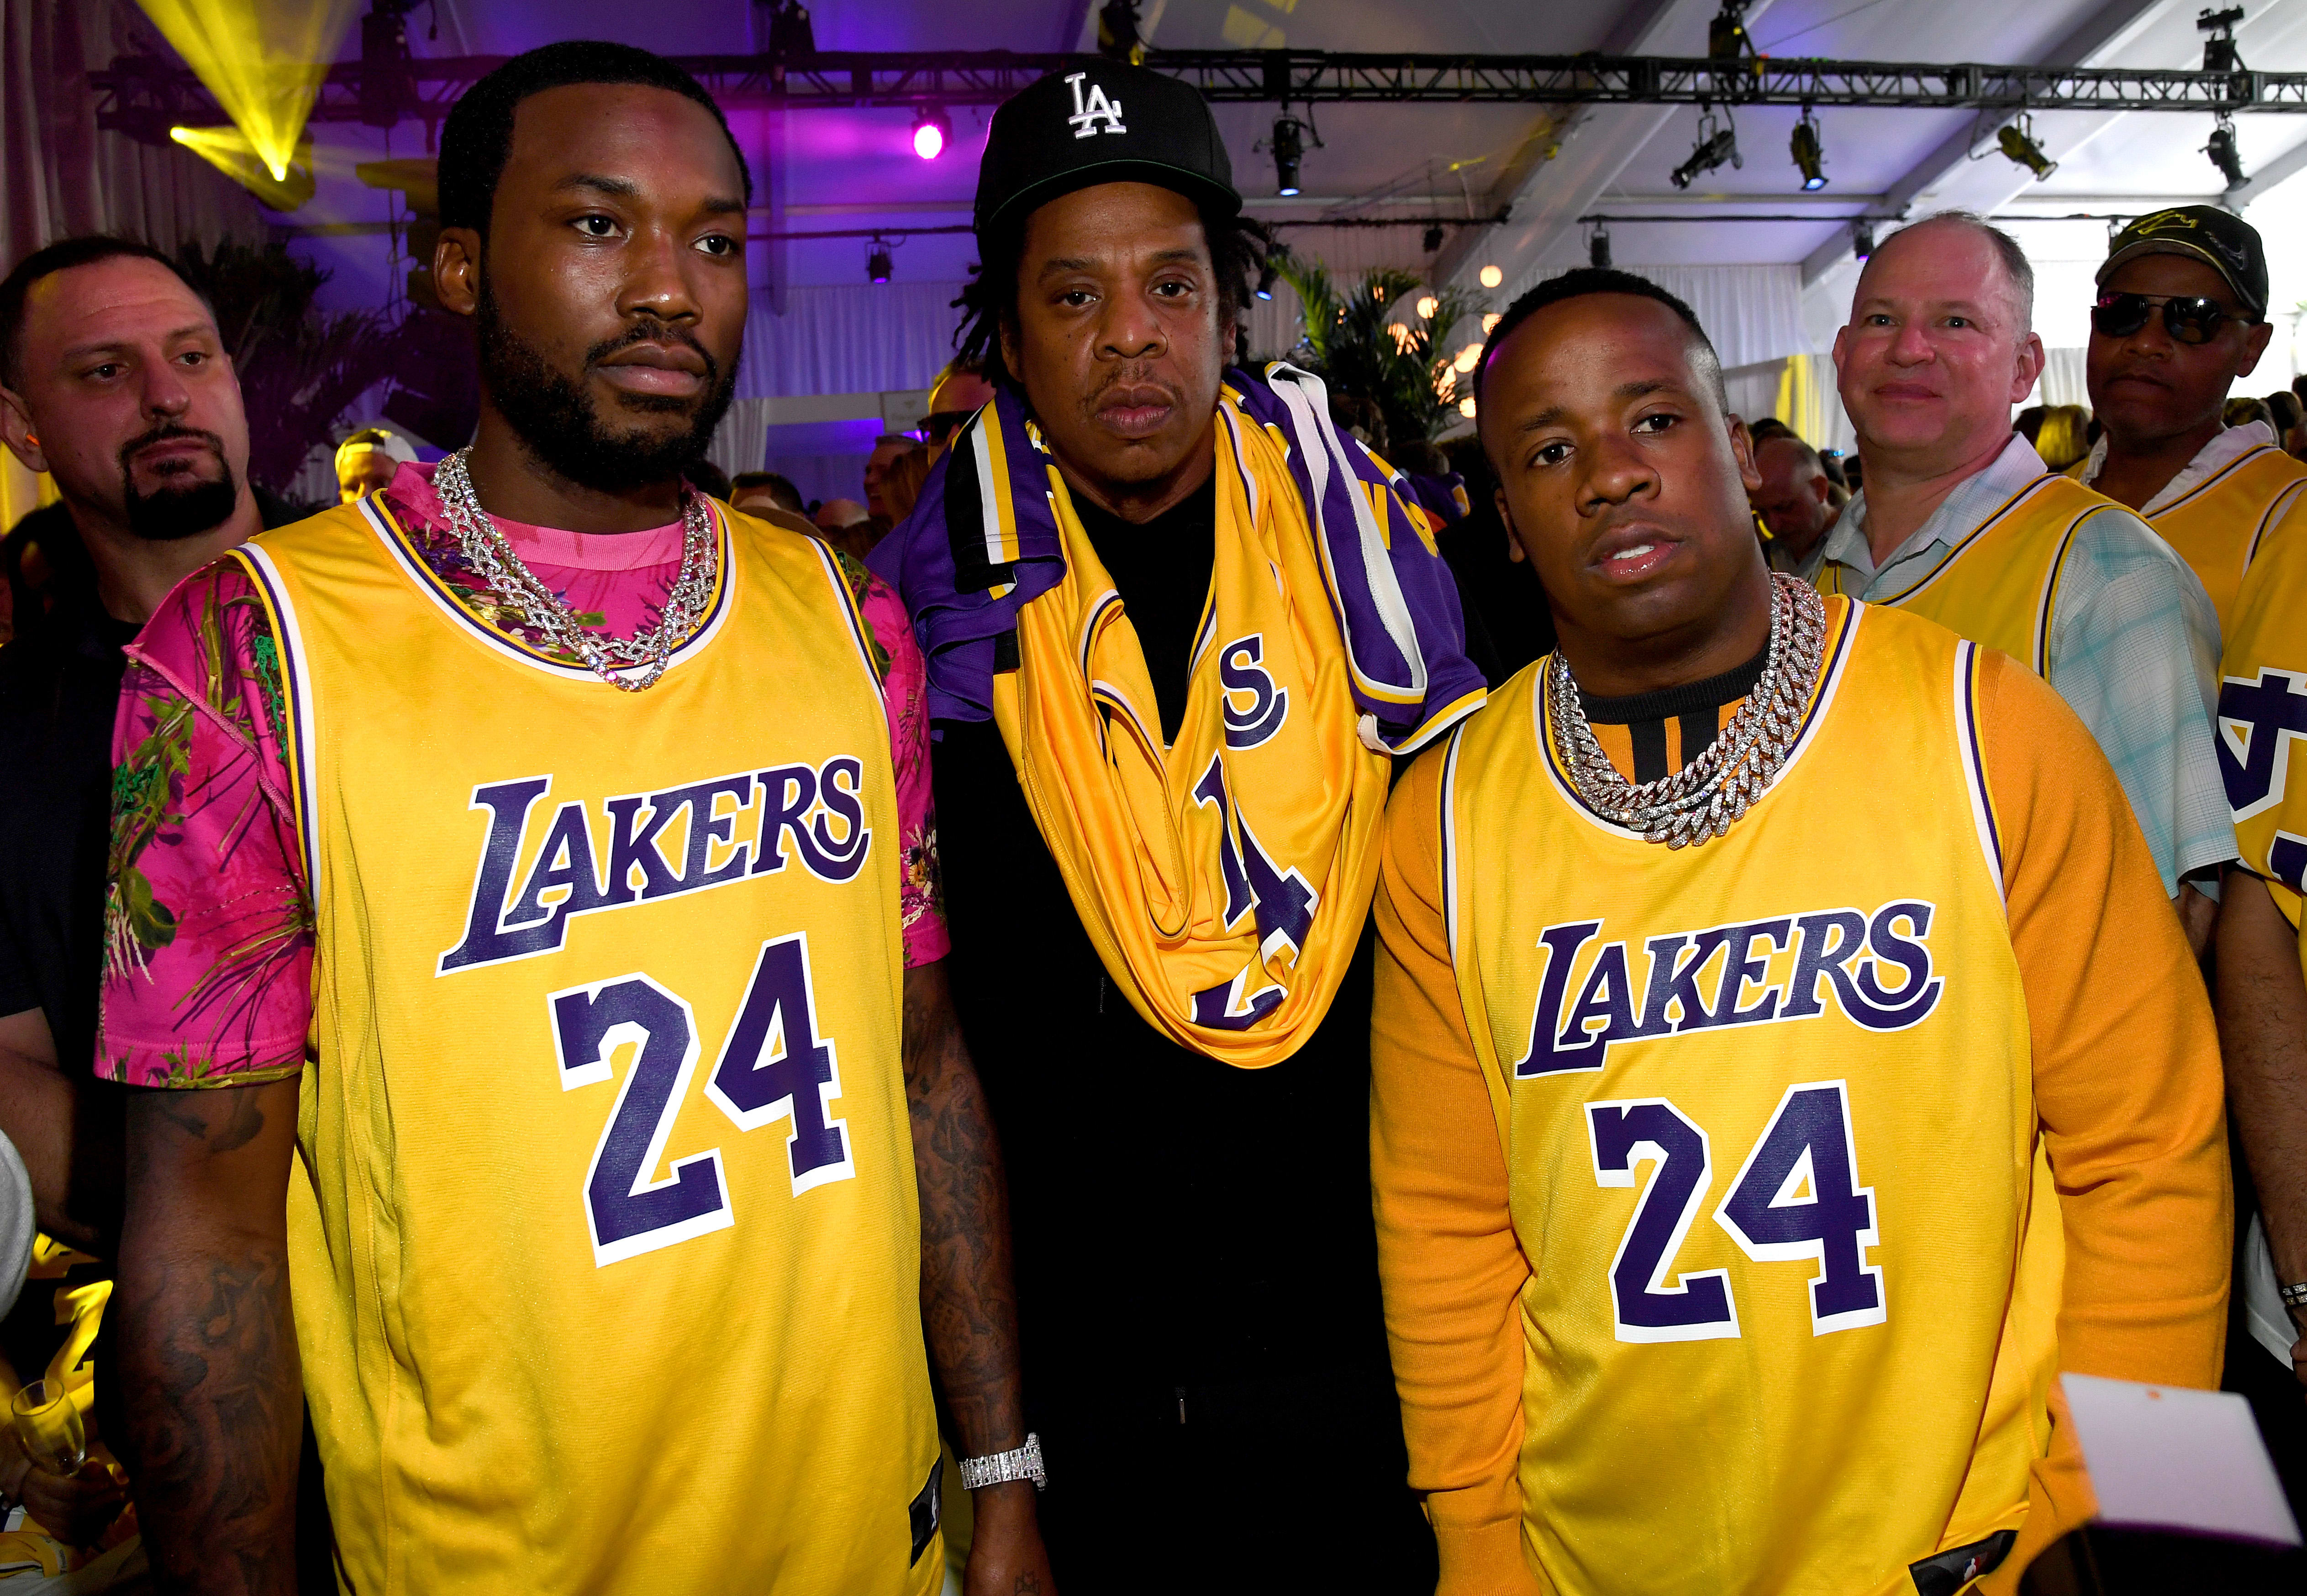 JAY Z, Meek Mill, and Yo Gotti Arrive To The Super Bowl in Kobe Bryant Tribute Jerseys